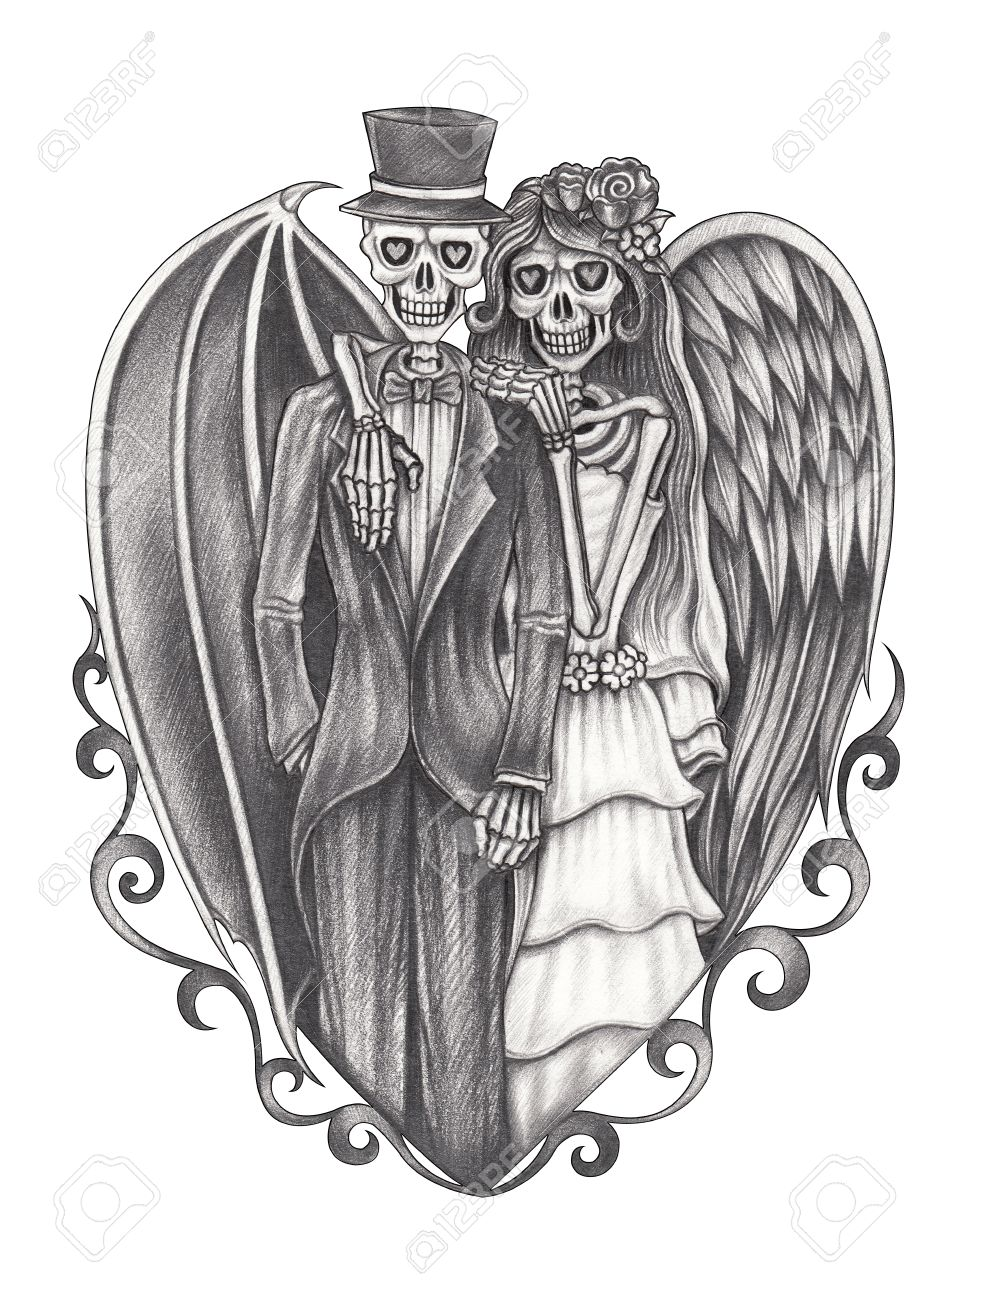 Art devil and angel wedding skulls hand pencil drawing on paper stock photo